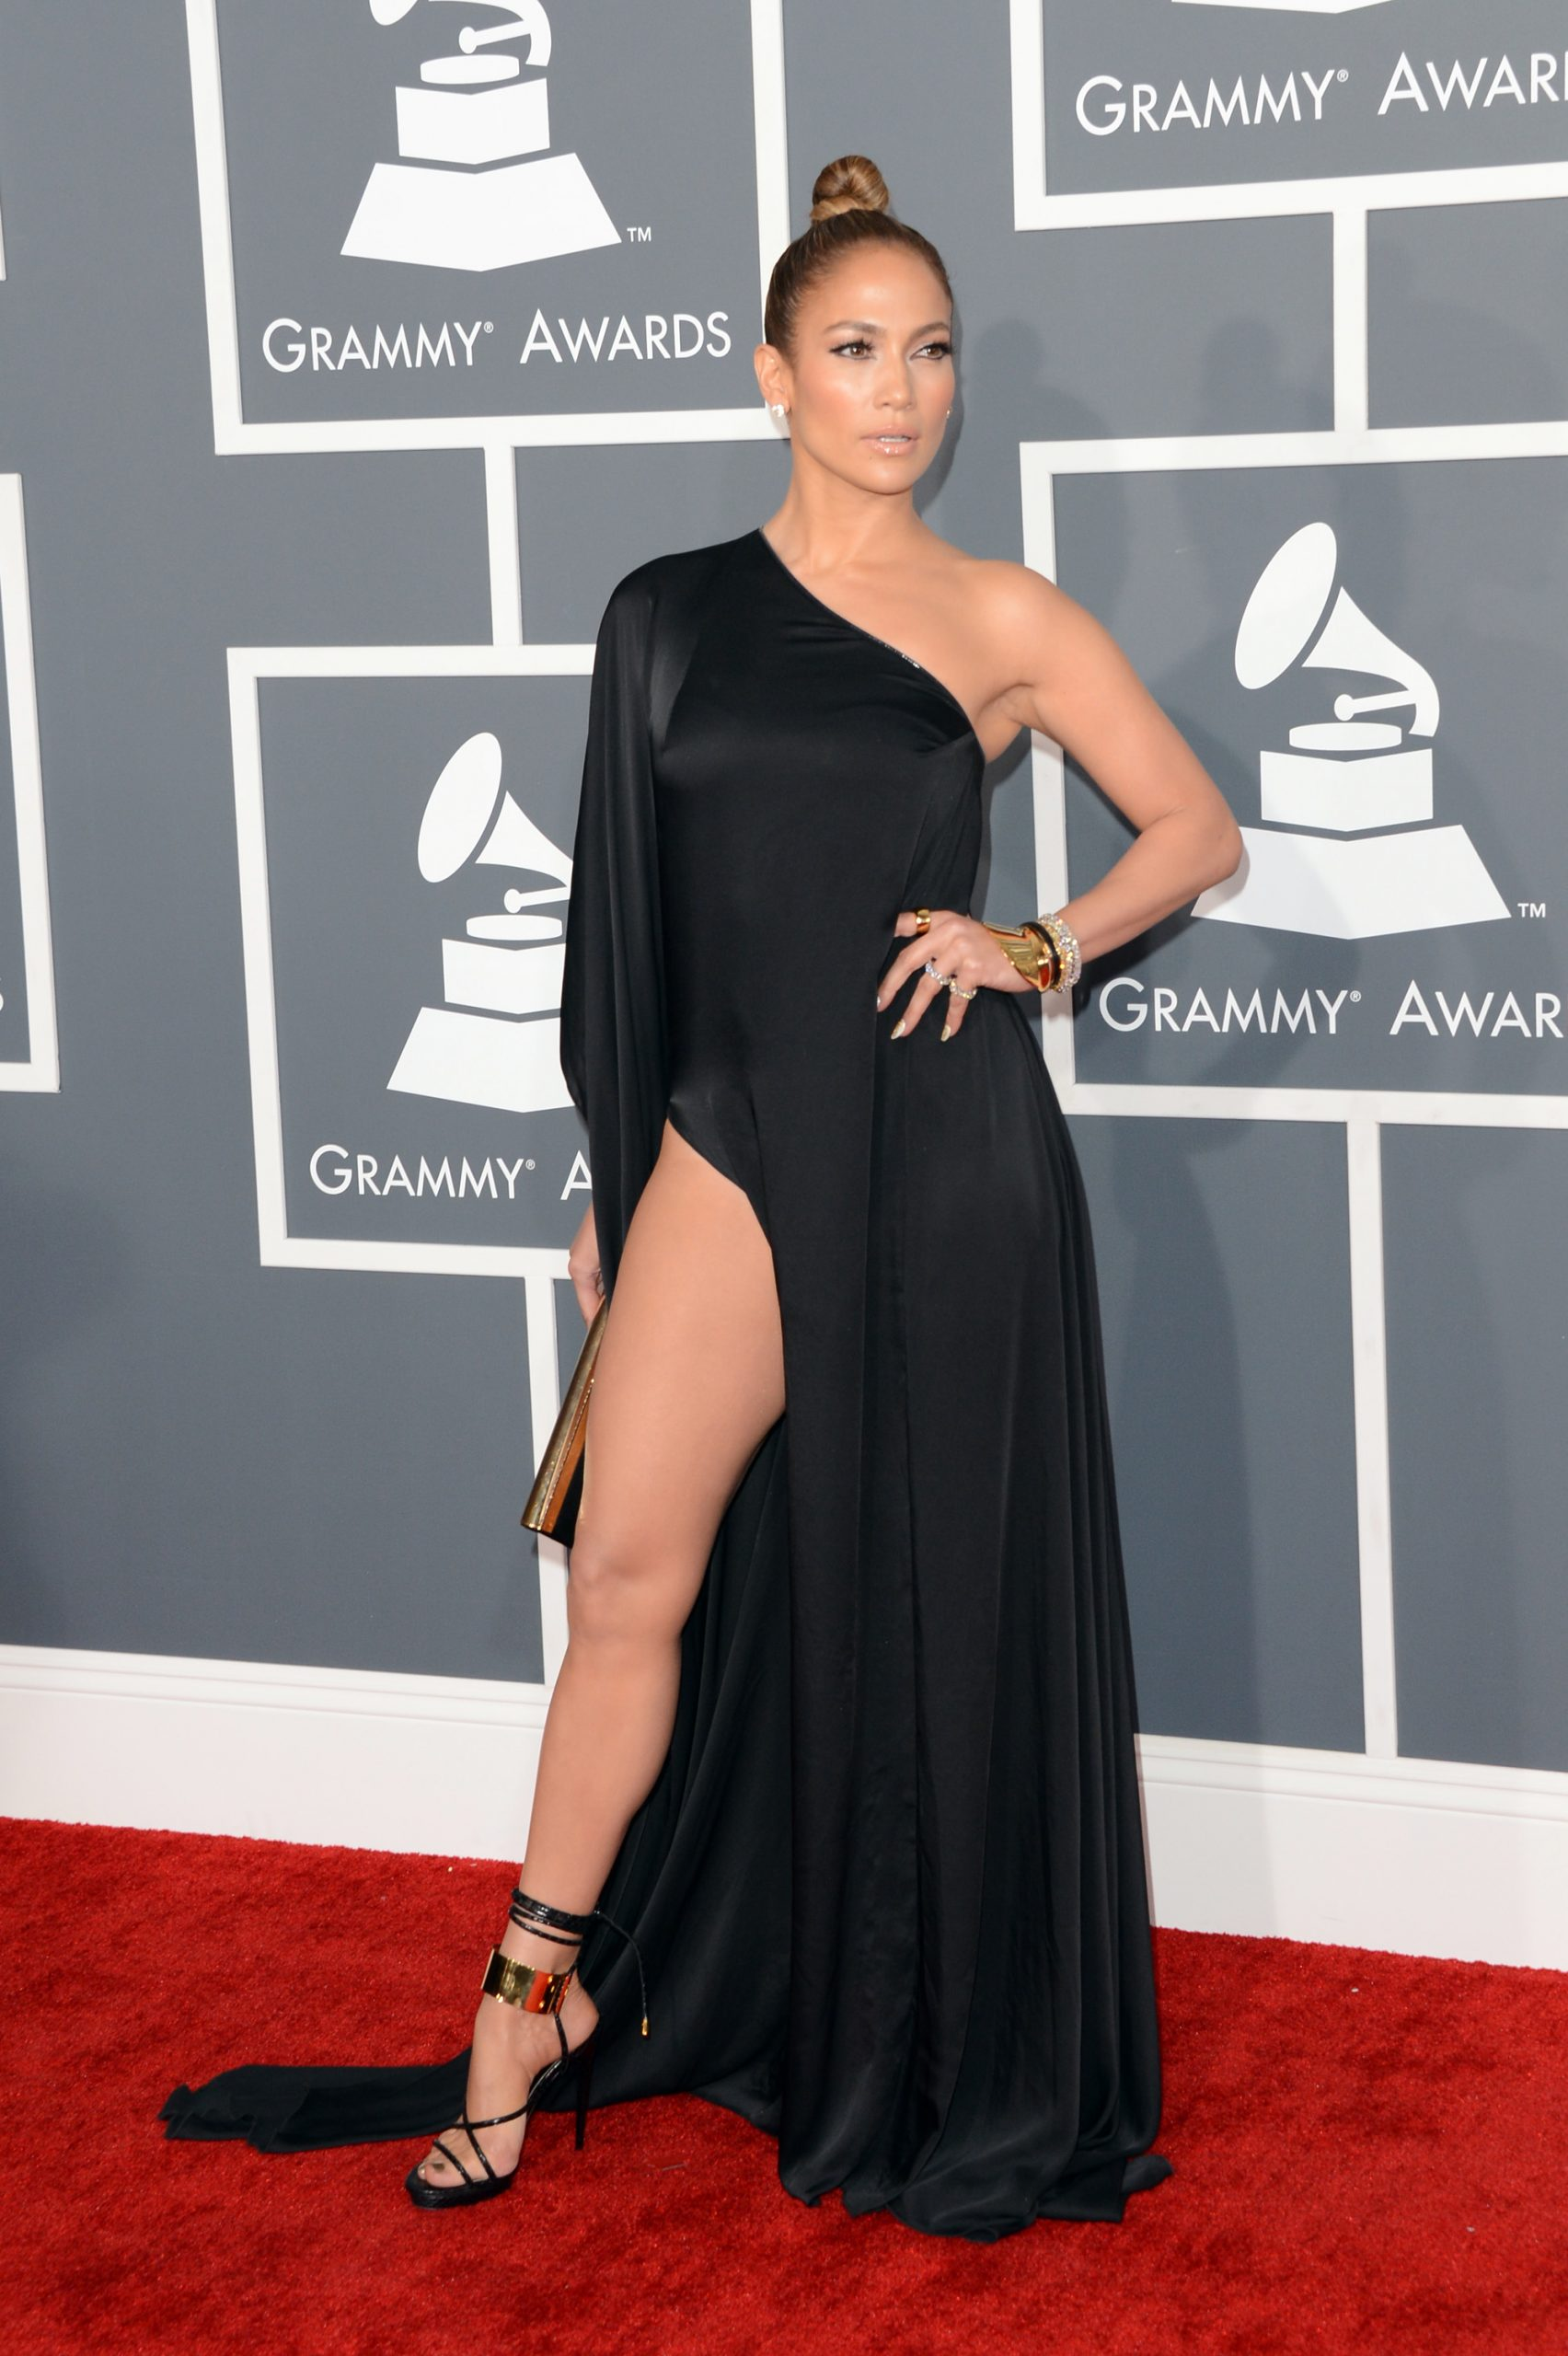 Jennifer Lopez at the Grammys